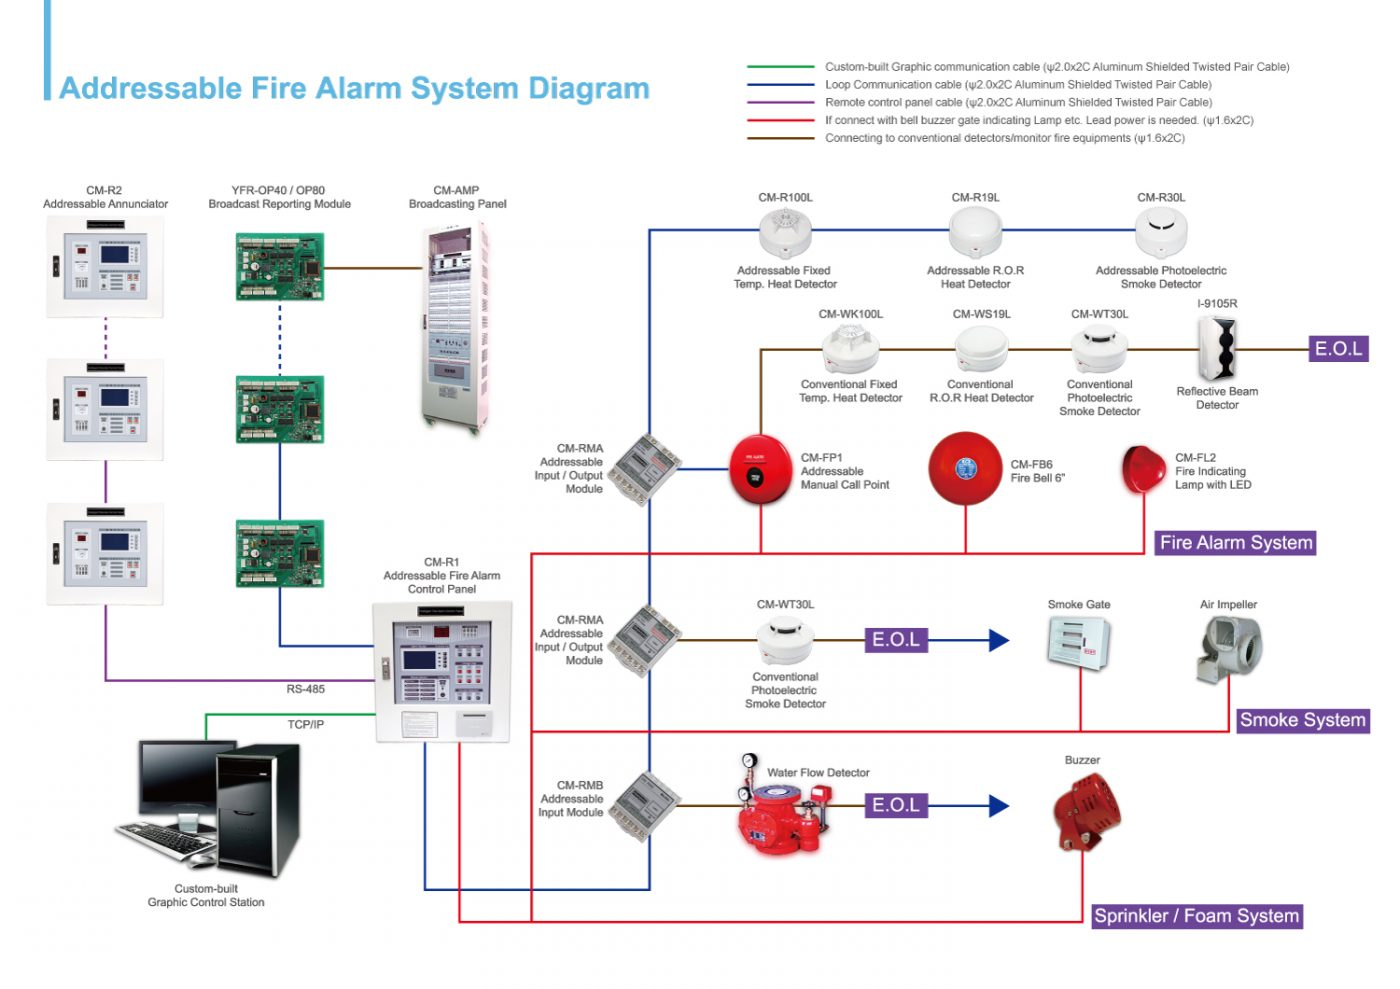 Basic Fire Alarm Wiring | Wiring Schematic Diagram on simplex zam wiring, simplex pull station, simplex duct smoke detectors, car alarm installation wiring diagrams, alarm contact wiring diagrams, manual pull station diagrams, simplex smoke detector covers, home alarm wiring diagrams, simplex fire pull covers, adt fire alarm wiring diagrams, motor control ladder diagrams, simplex photoelectric smoke detector, fire alarm system wiring diagrams, electrical loop diagrams, simplex duct detector wiring, simplex fire drill, commercial fire alarm wiring diagrams, simplex 2098 9649 duct detector, addressable fire alarm system diagrams, simplex fire alarms in elementary schools,